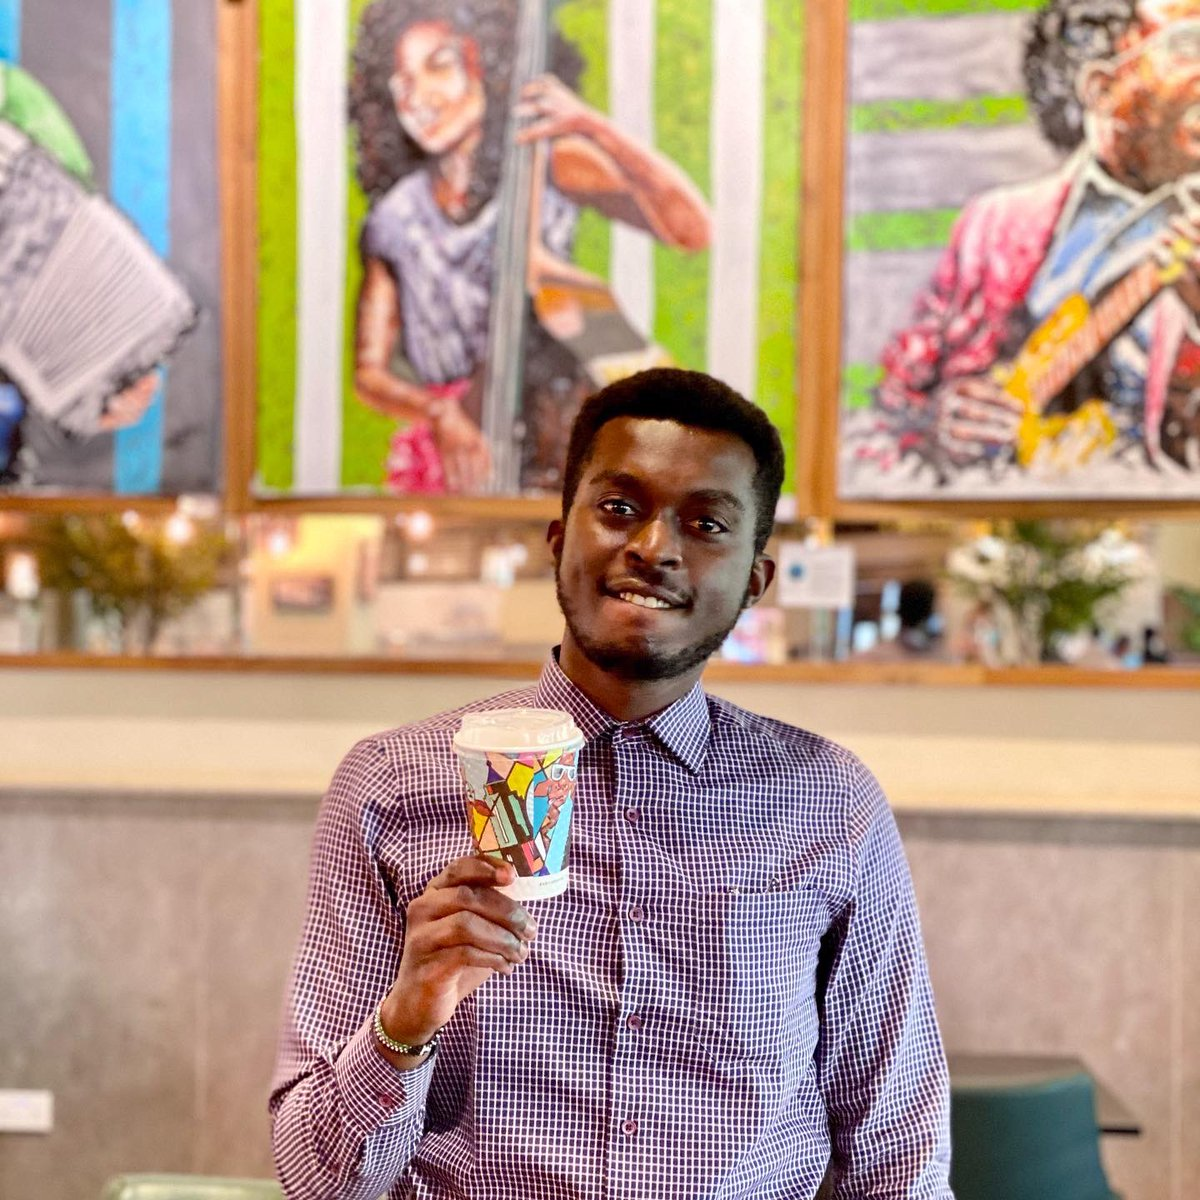 Get creative, be inspired and colour the city! 🎨 Tag #ARToftheCity for our fun weekly giveaways! Featuring @kharsh_art home-grown creative Cyprian Kiswili, our #ARToftheCity Best Design ❤️ Be sure to visit his exhibition in our @WestgateMallKe Branch, until the end of March! https://t.co/j1FQDOjwsd